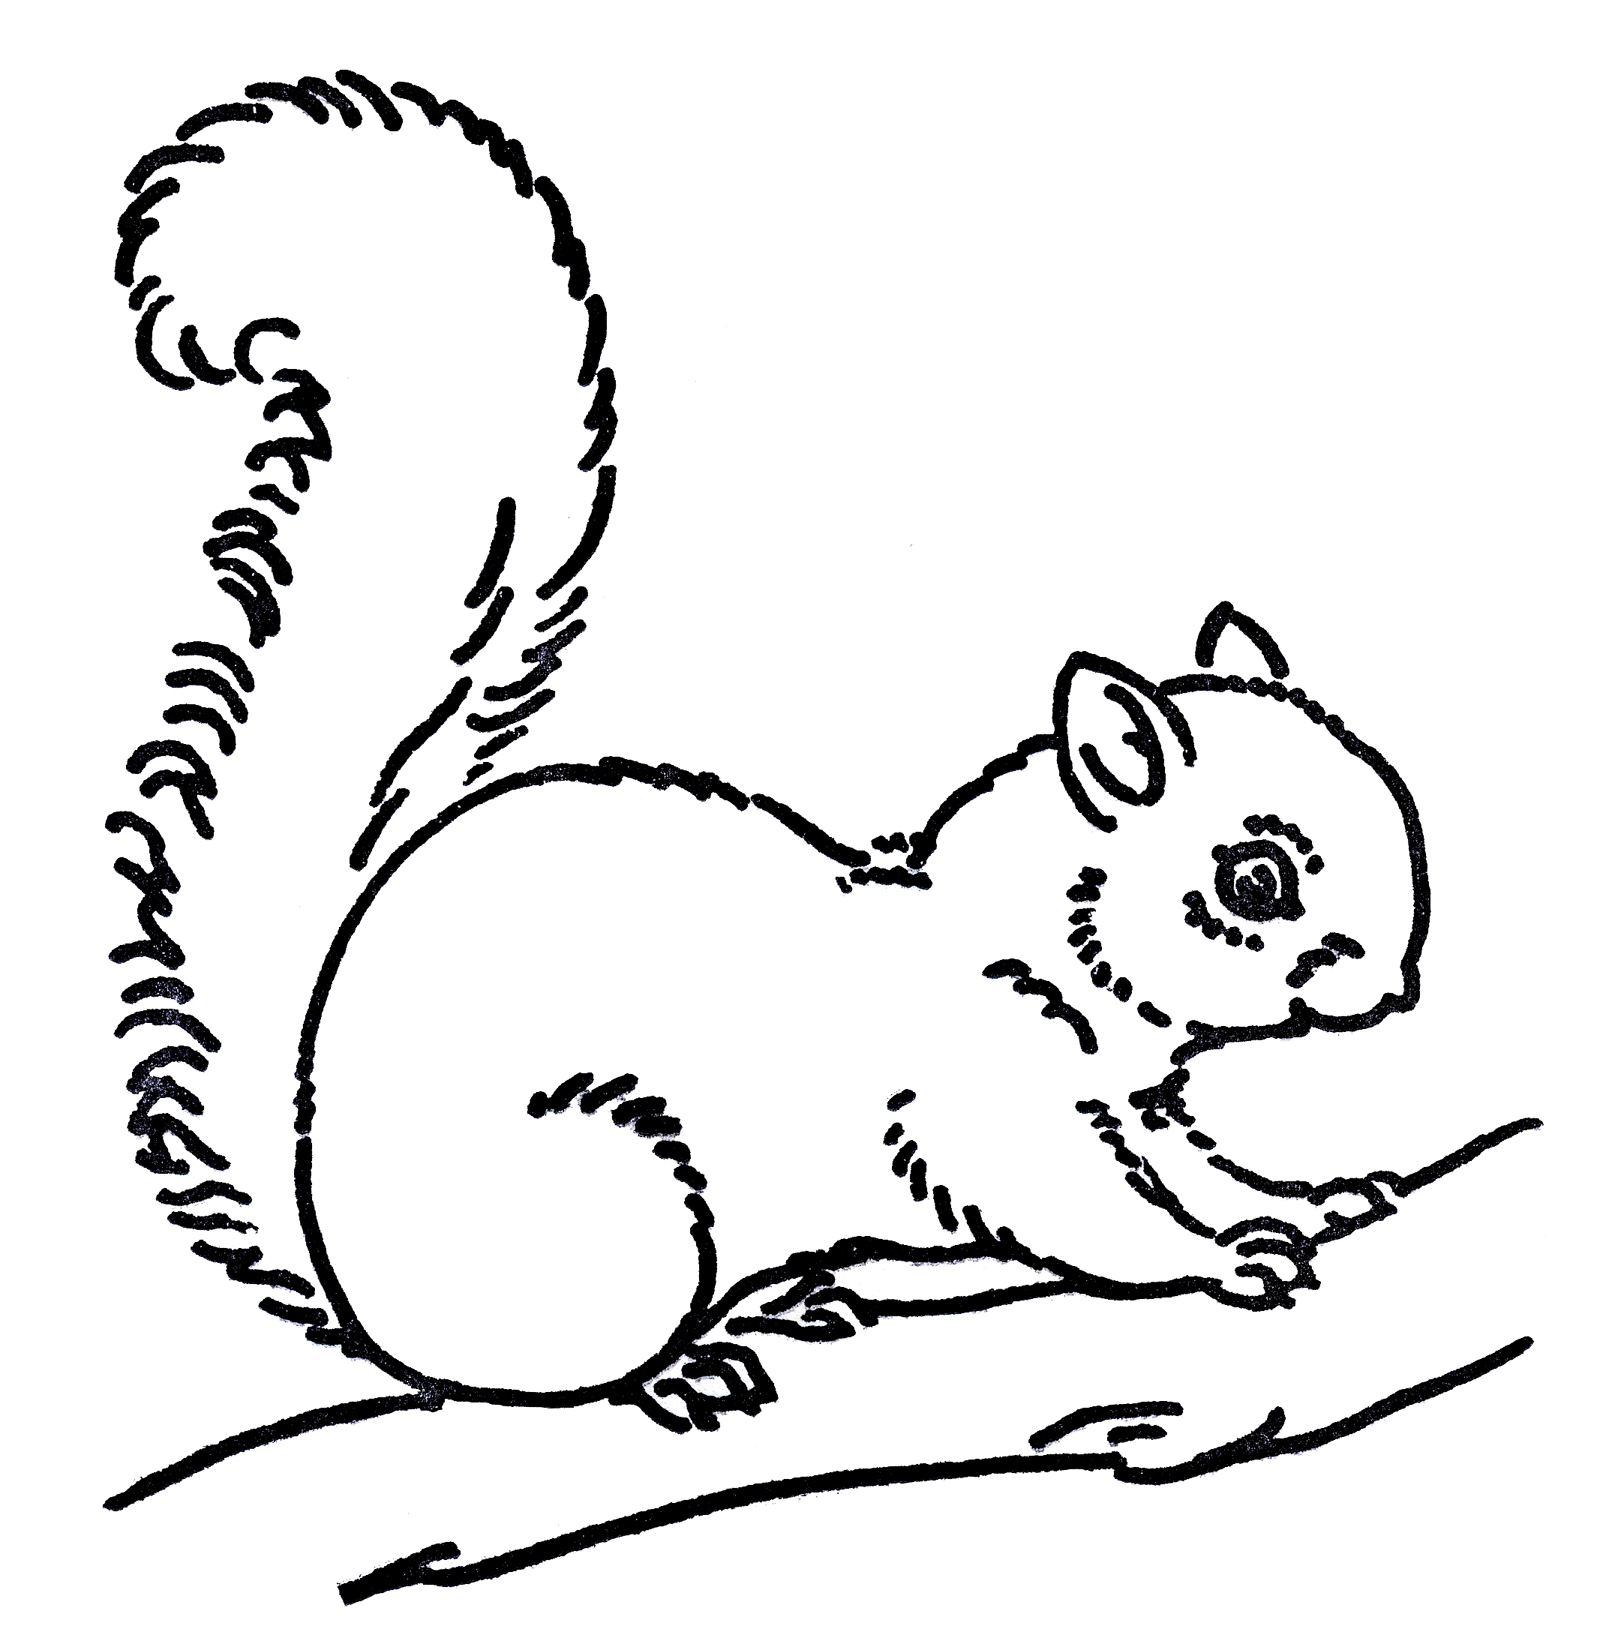 Line Art Icons : Free line art images squirrel drawings the graphics fairy